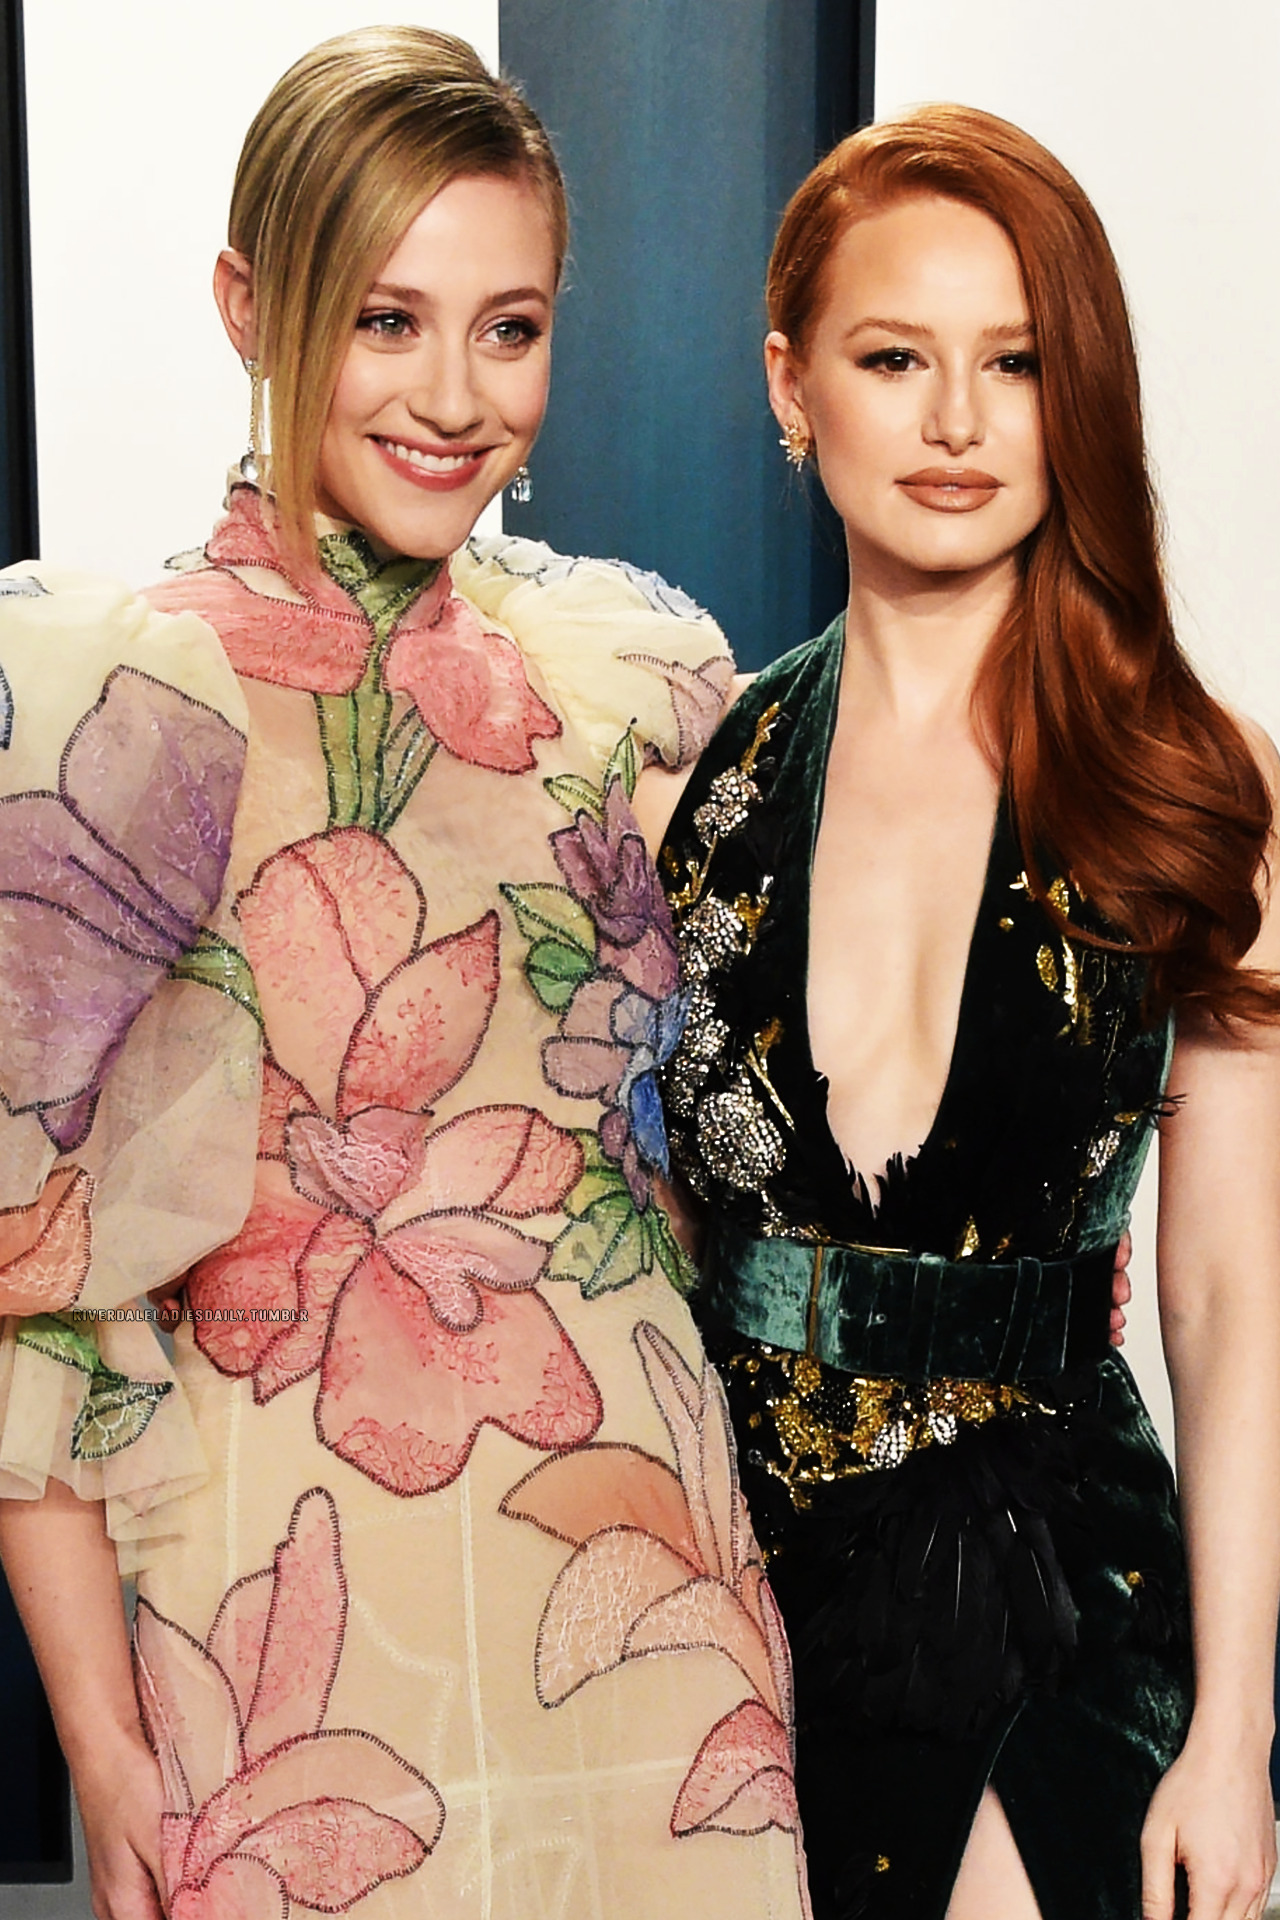 Lili Reinhart and Madelaine Petsch attend the Vanity Fair Oscar Party on February 9th, 2020